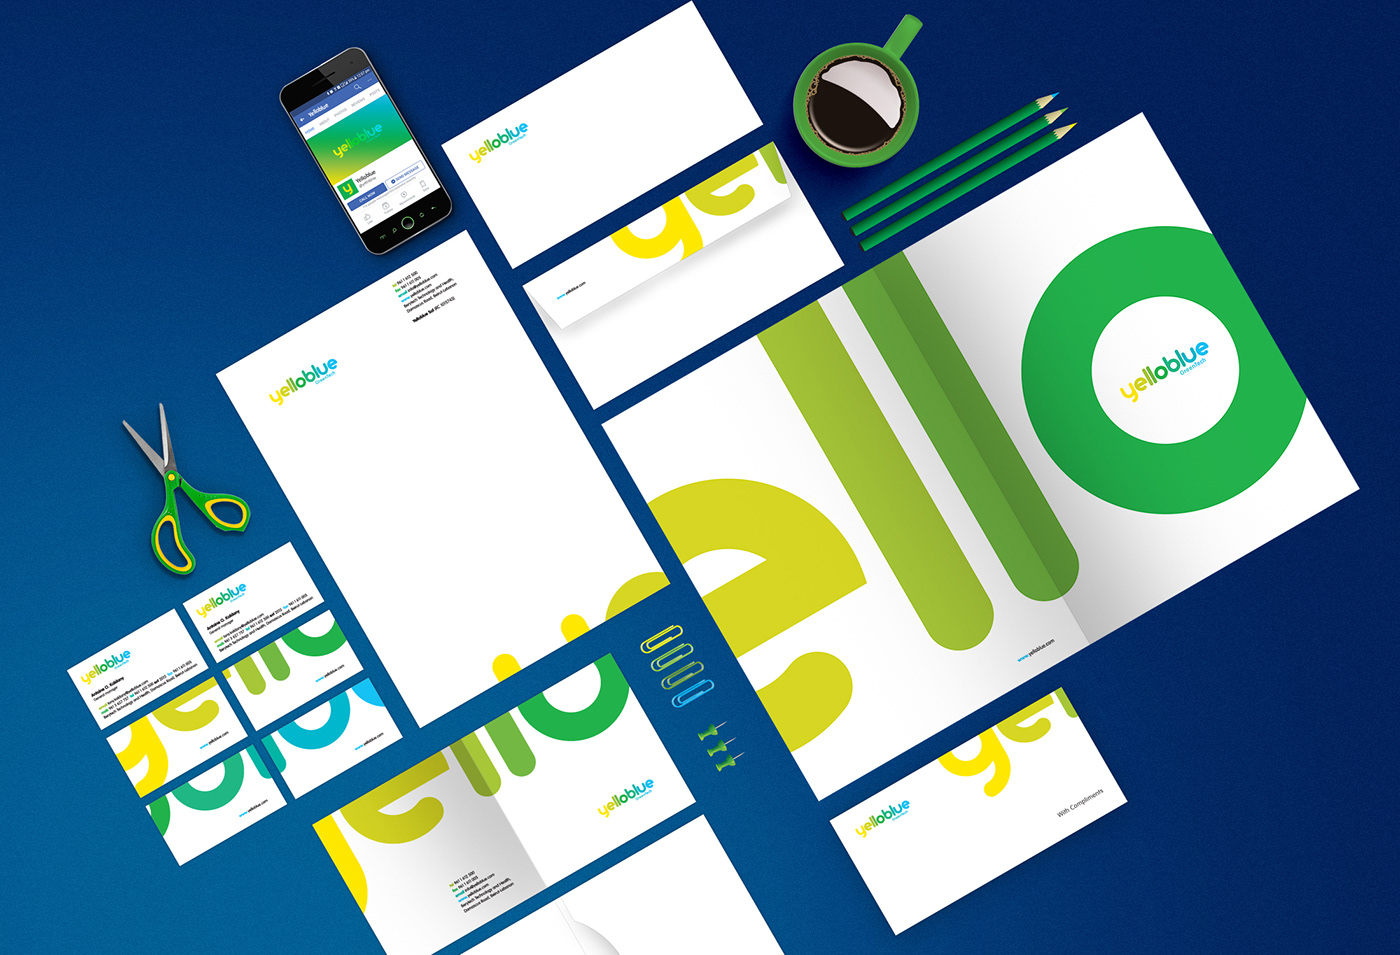 Yelloblue - Corporate identity